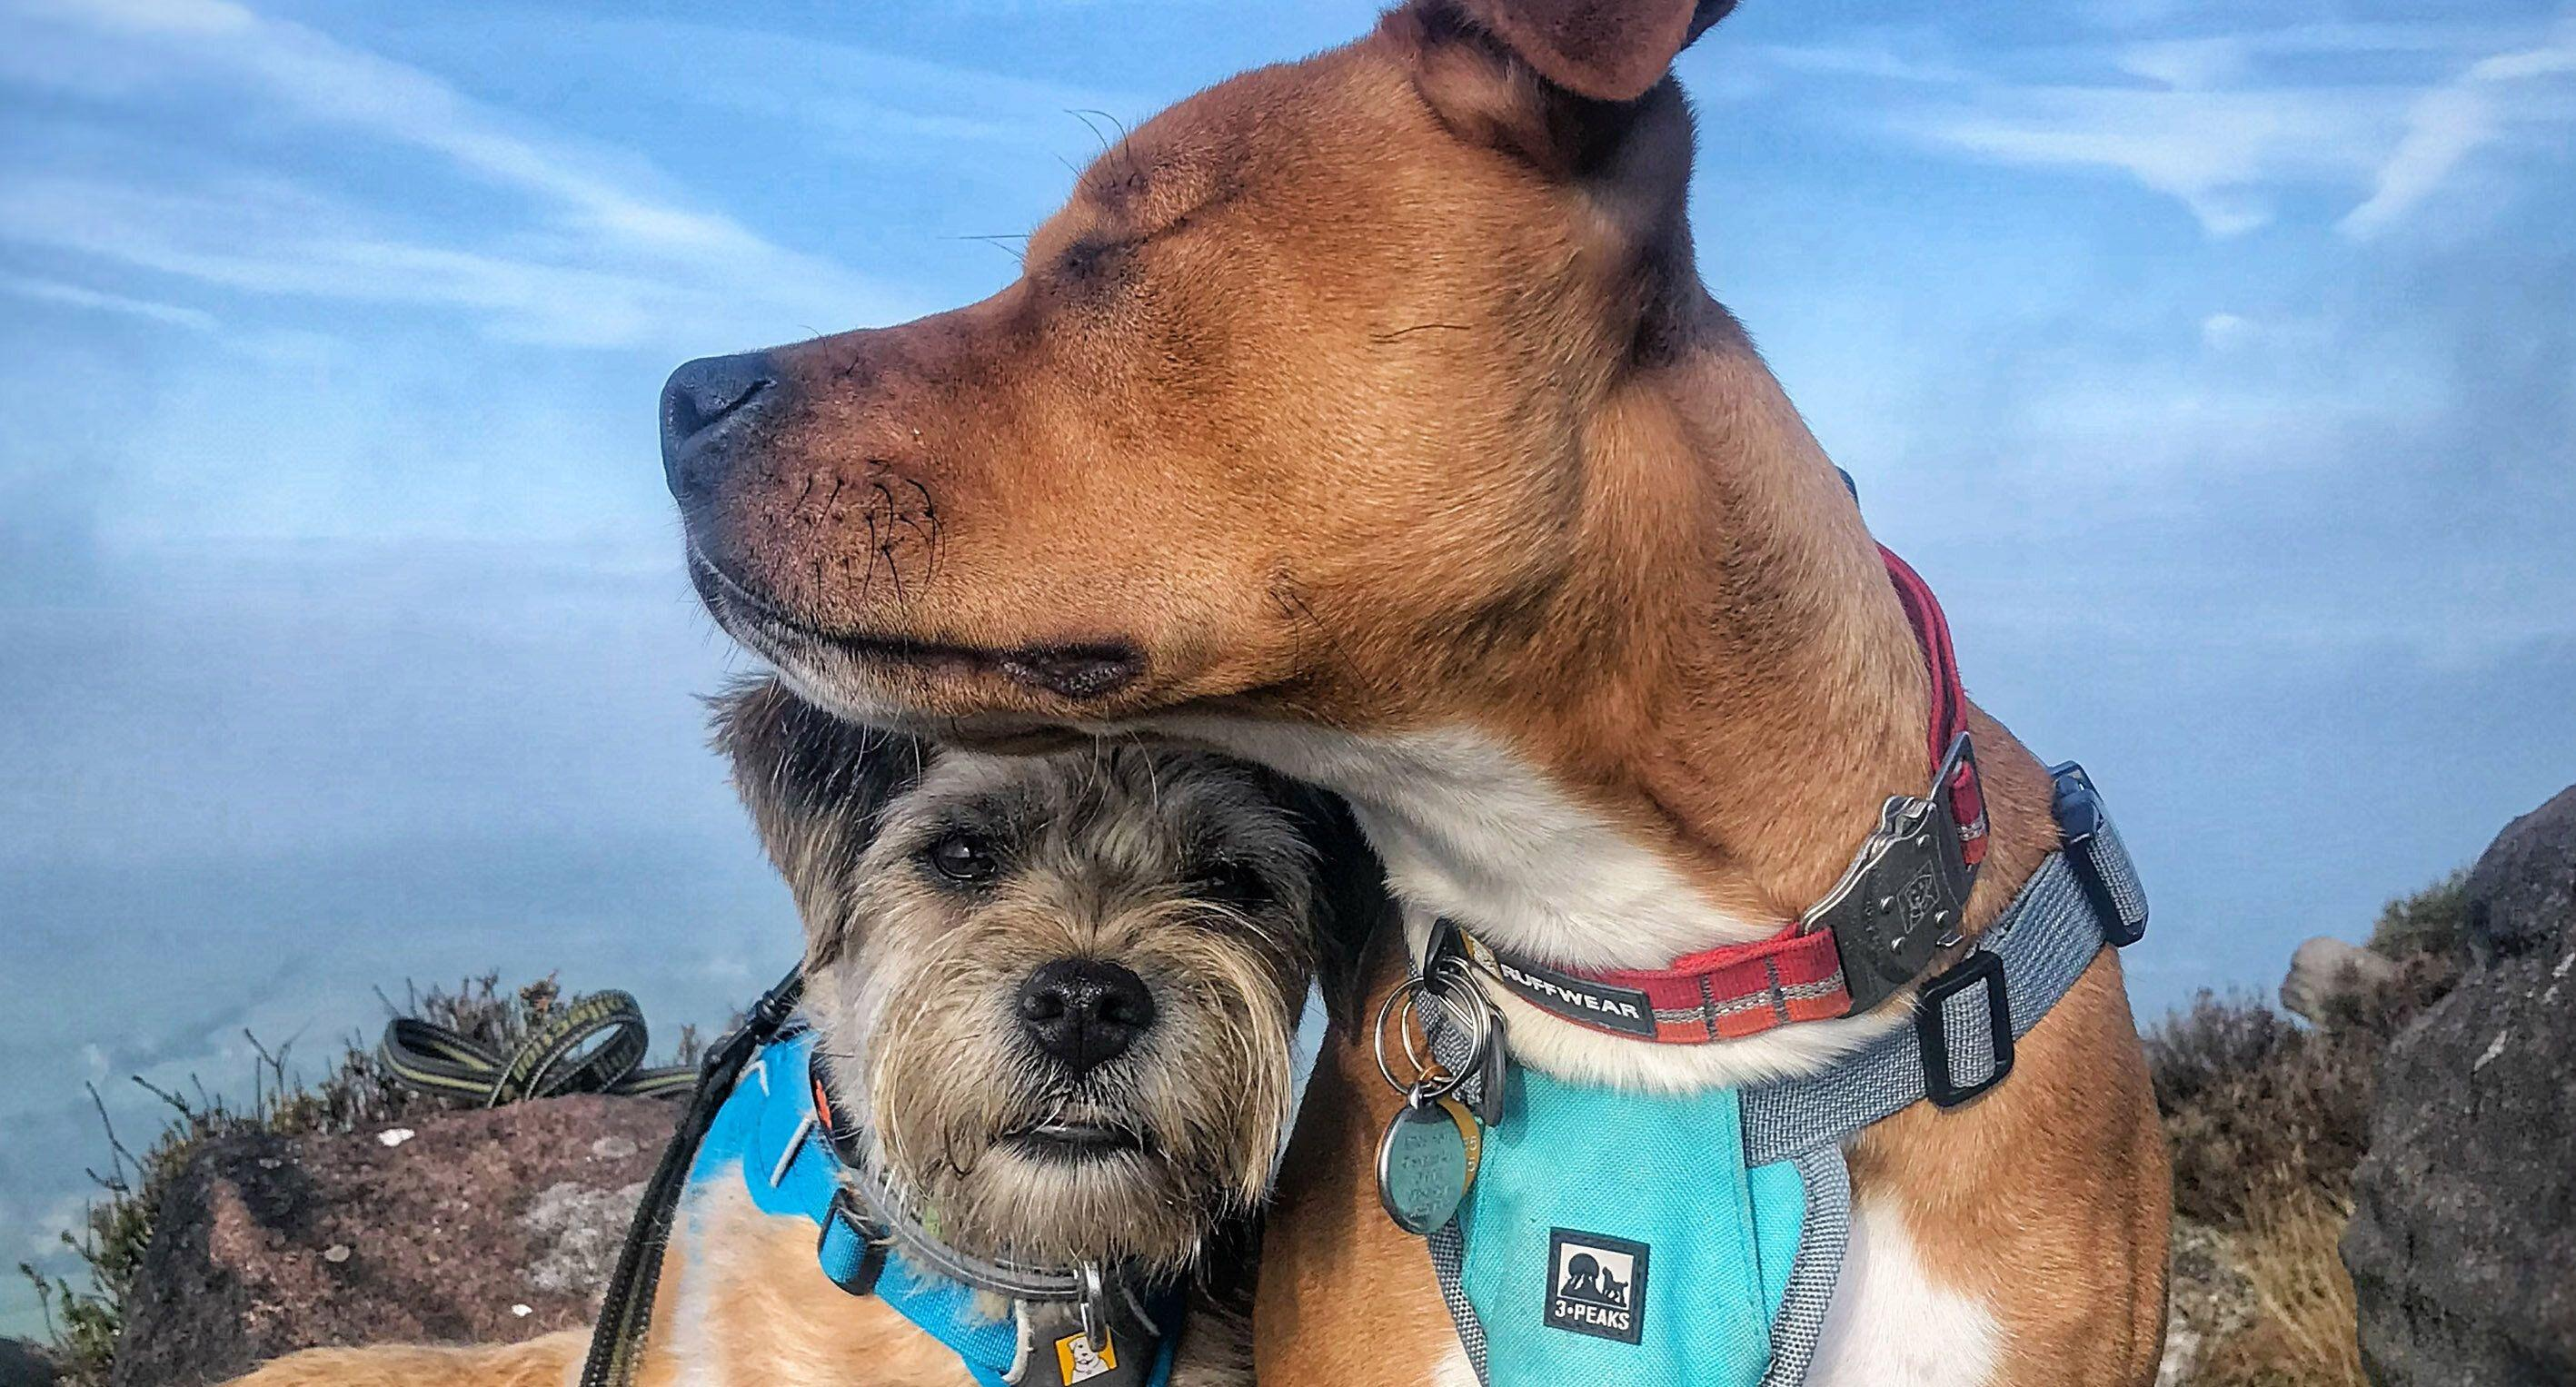 Blind pooch has guide dog as his only friend